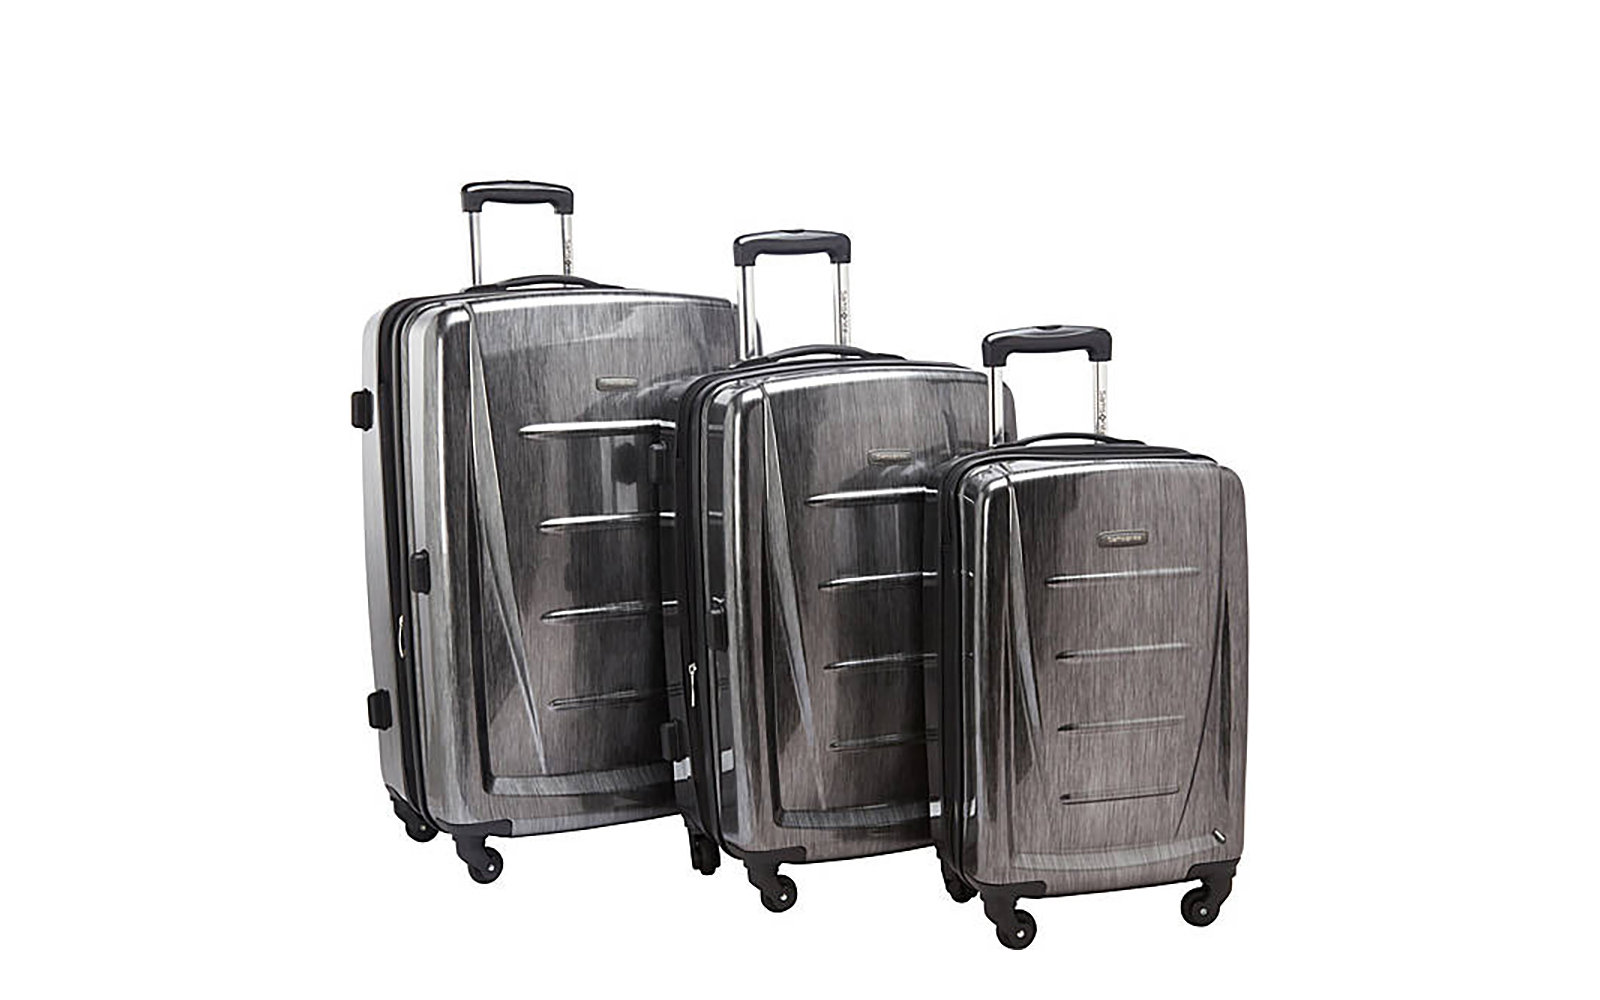 Samsonite Winfield 2 Fashion Three-Piece Hardside Luggage